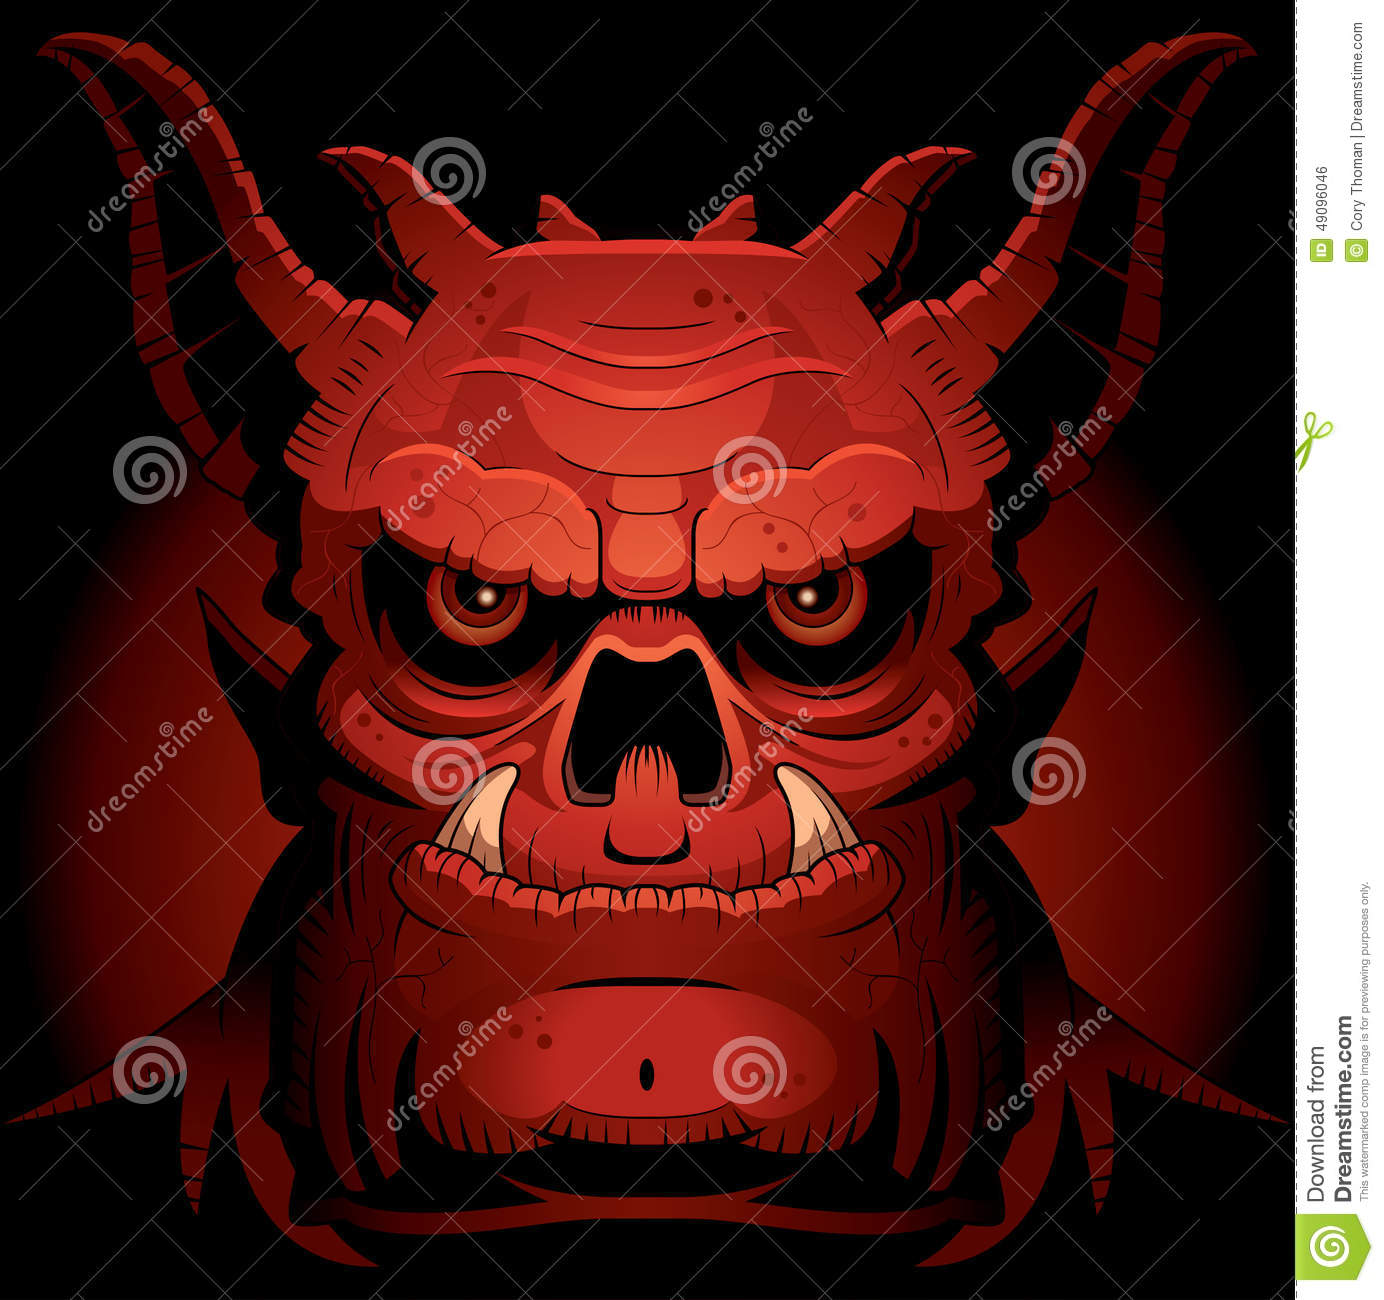 Scary Evil Demon Stock Vector - Image: 49096046